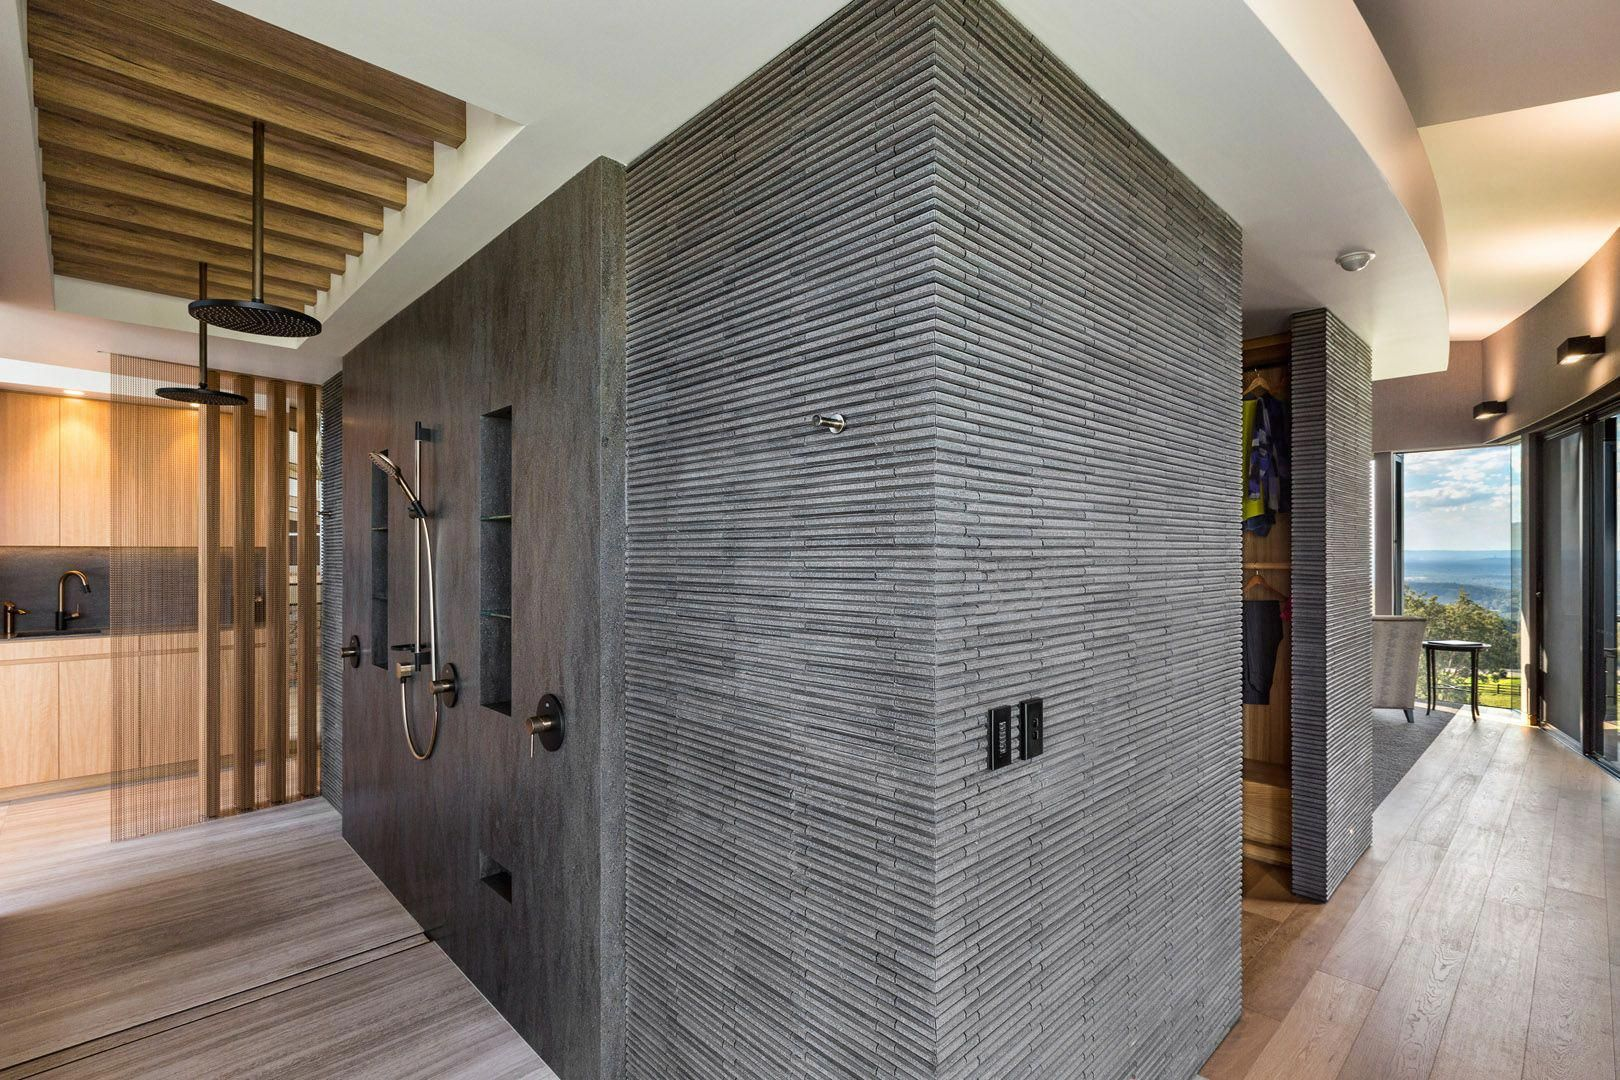 Luxe Lodge Corian Luxe lodge, Interior design projects